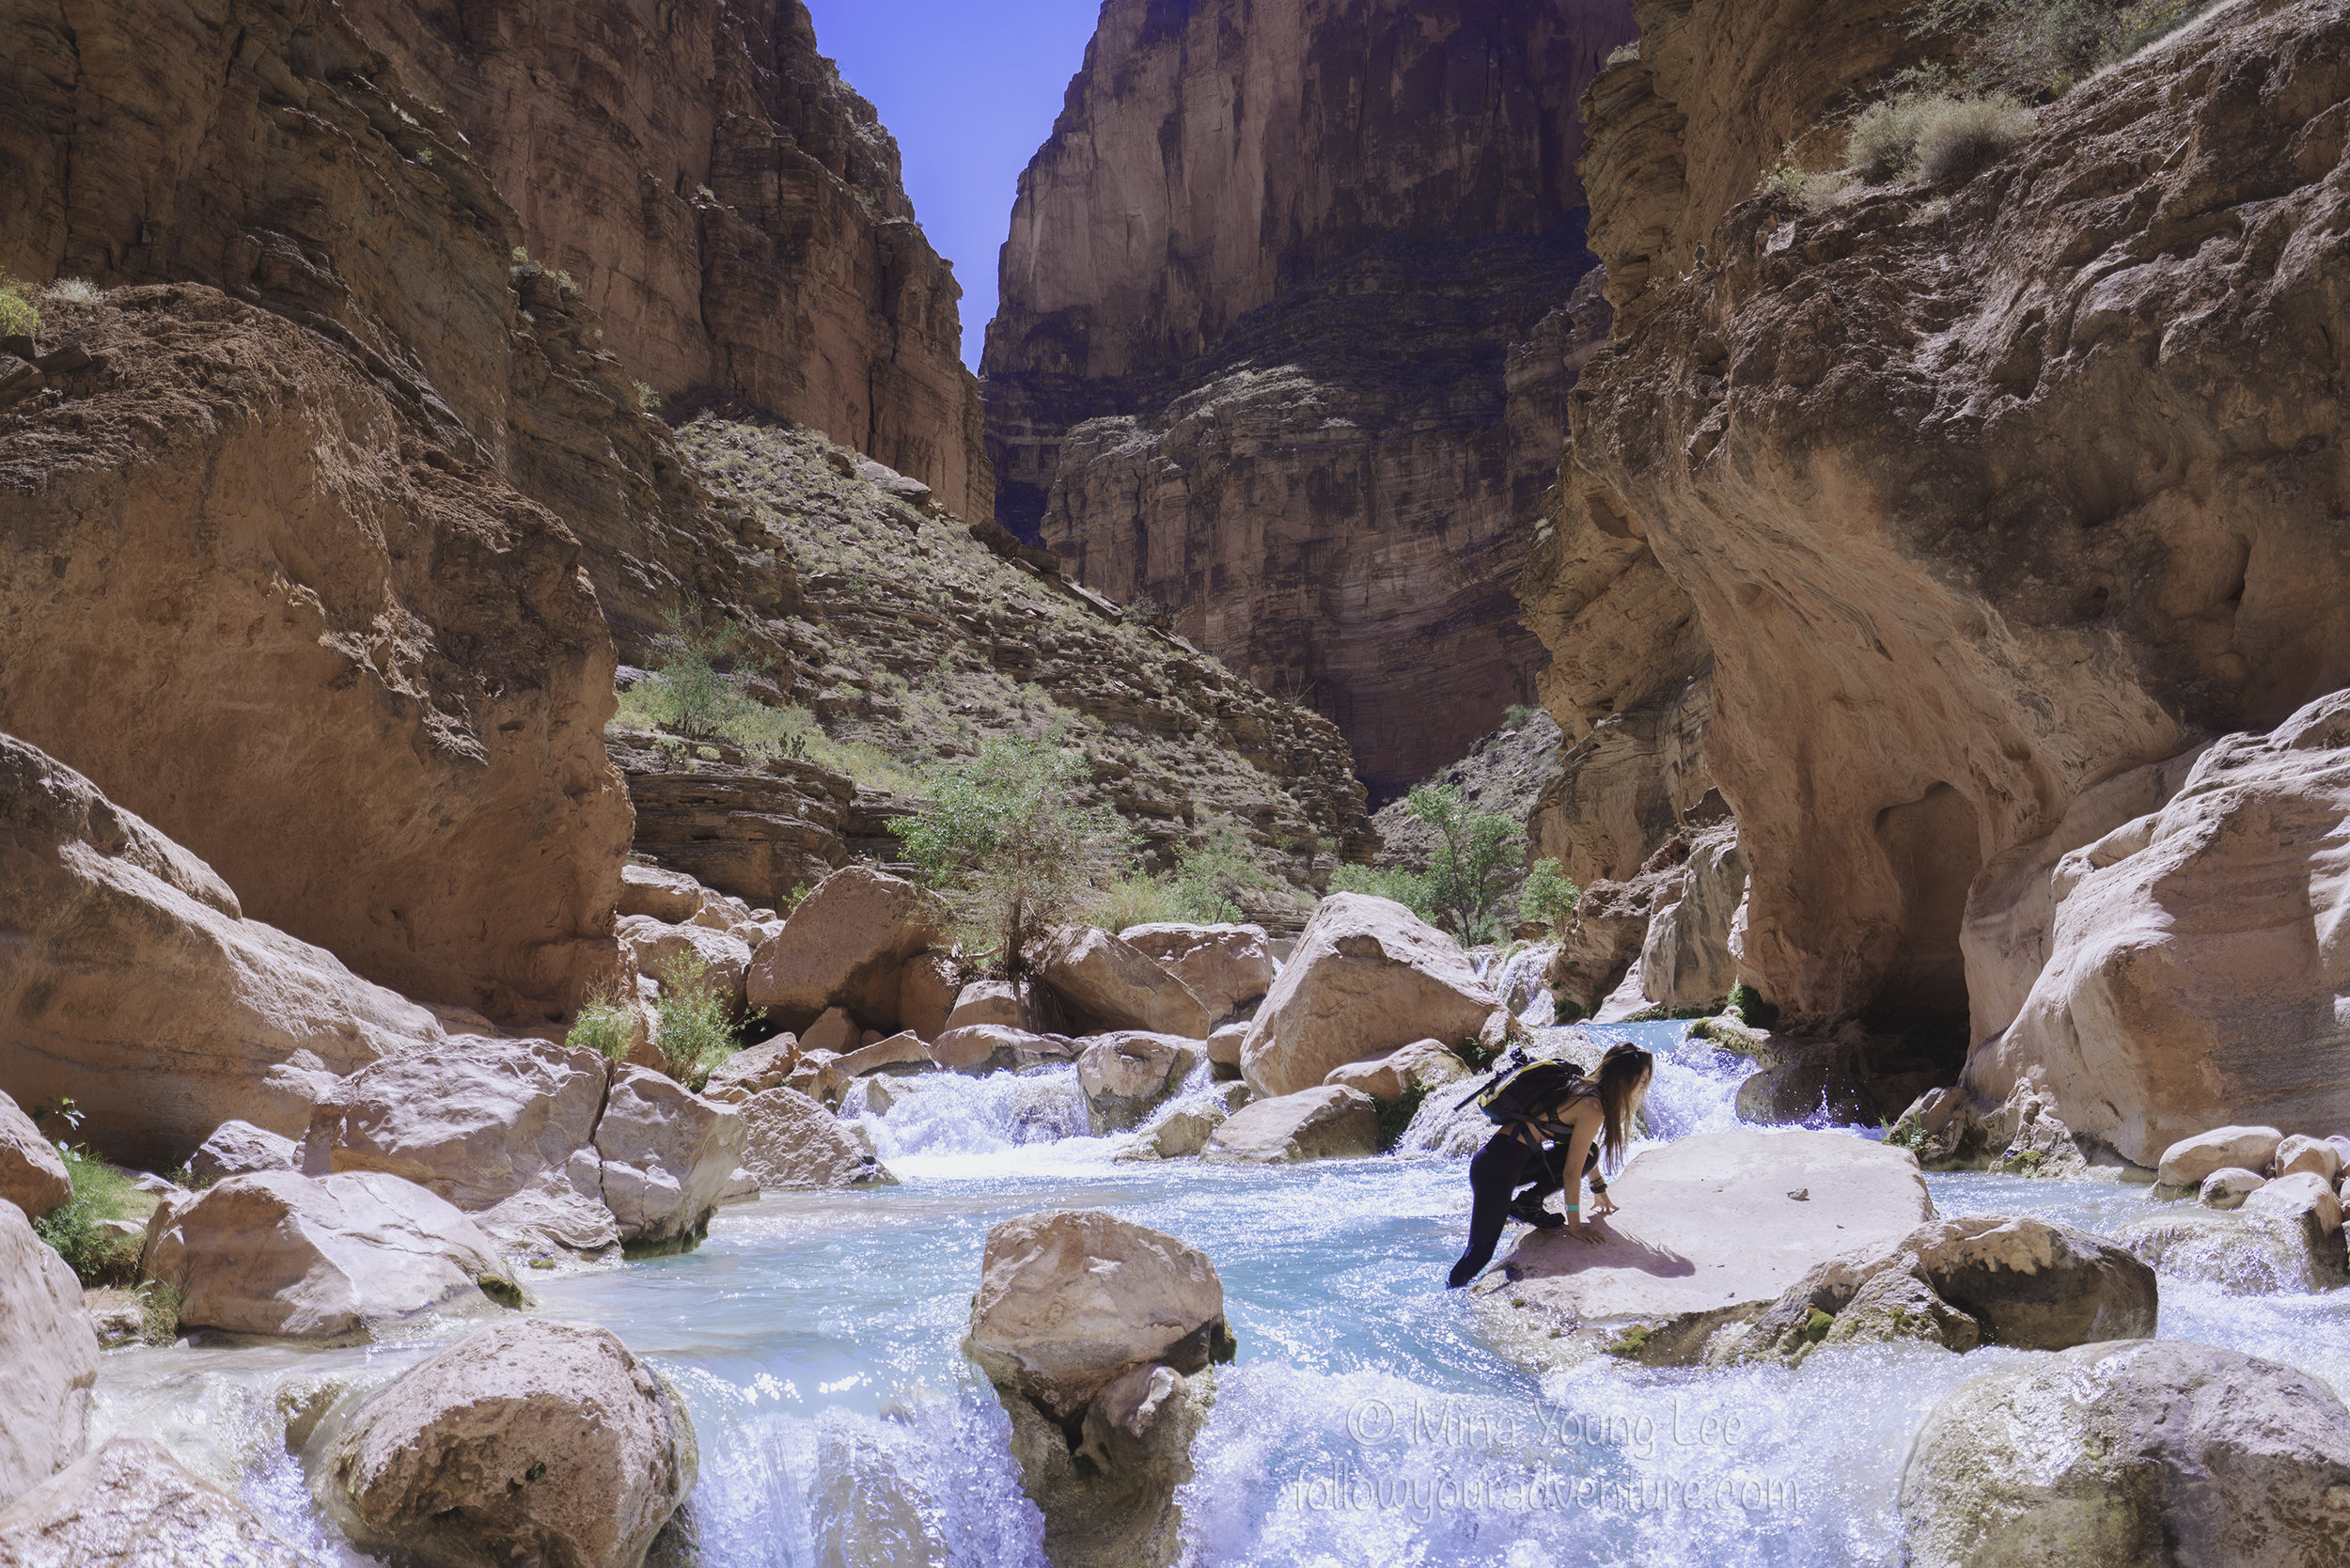 Adventurer Mina crosses the river along the trek to the Colorado River  Photograph by Juuso Ringman and Mina Young Lee